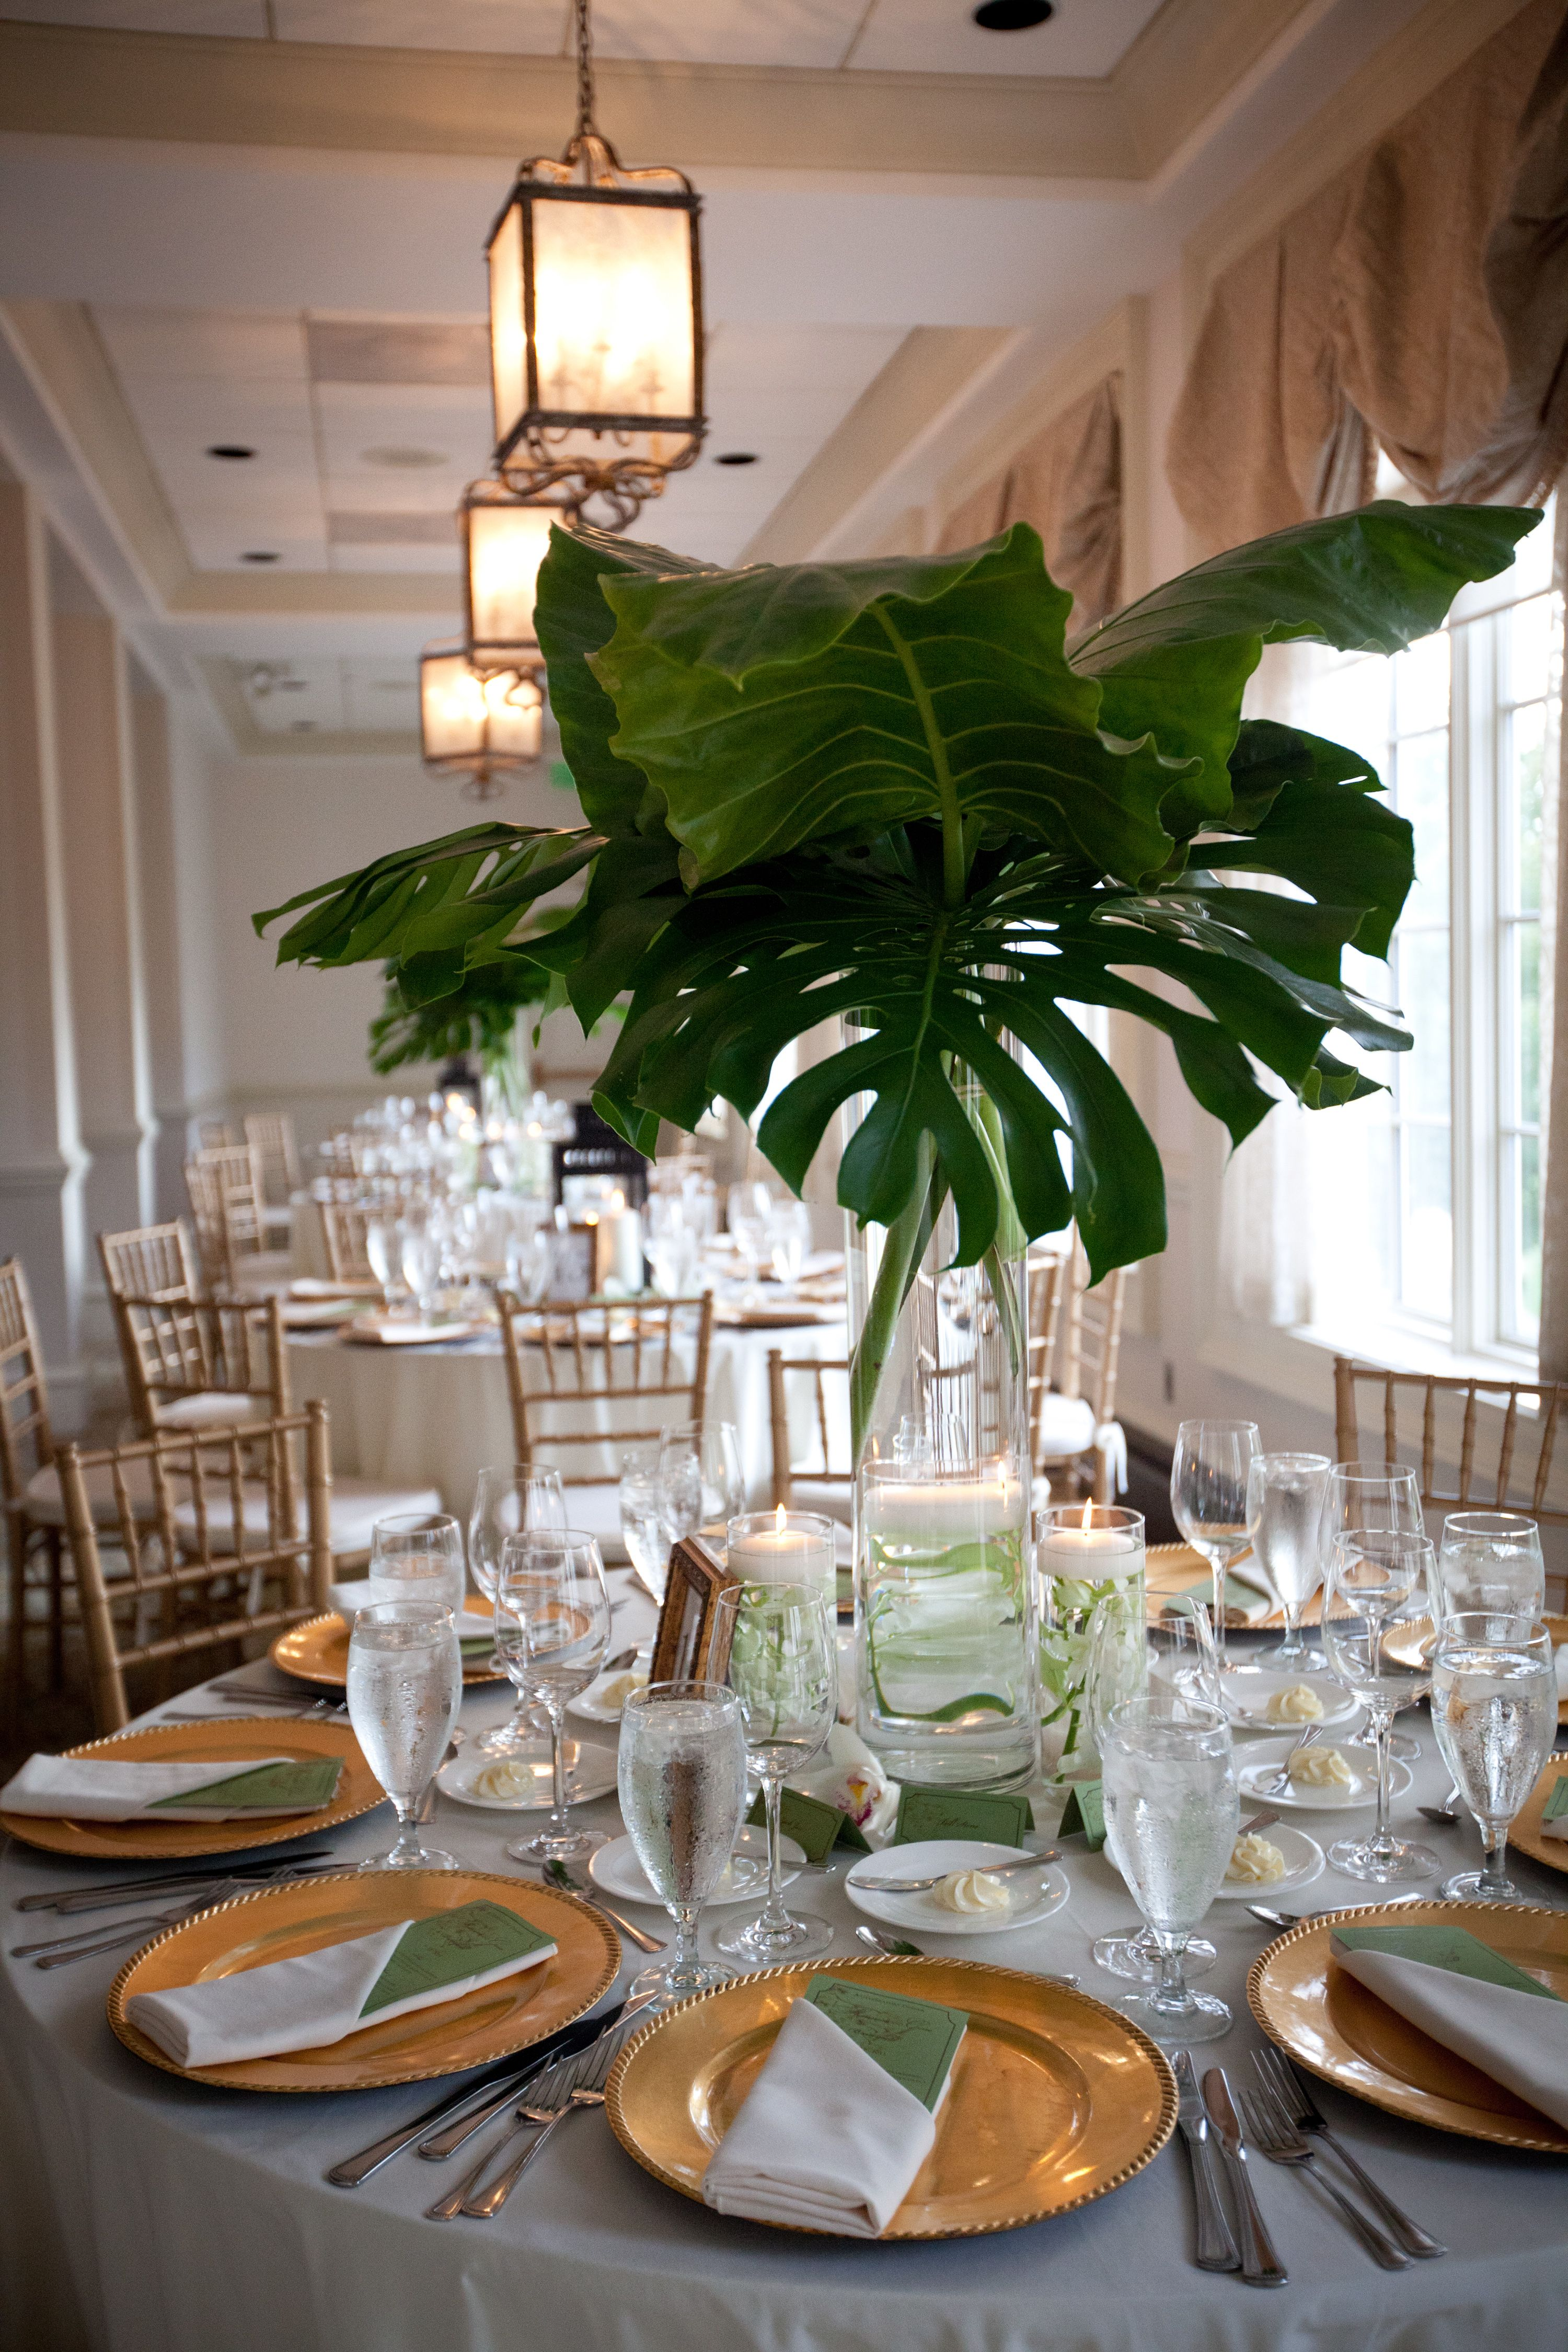 Giant Palm Leaves As Centerpiece Dramatic Yet Cost